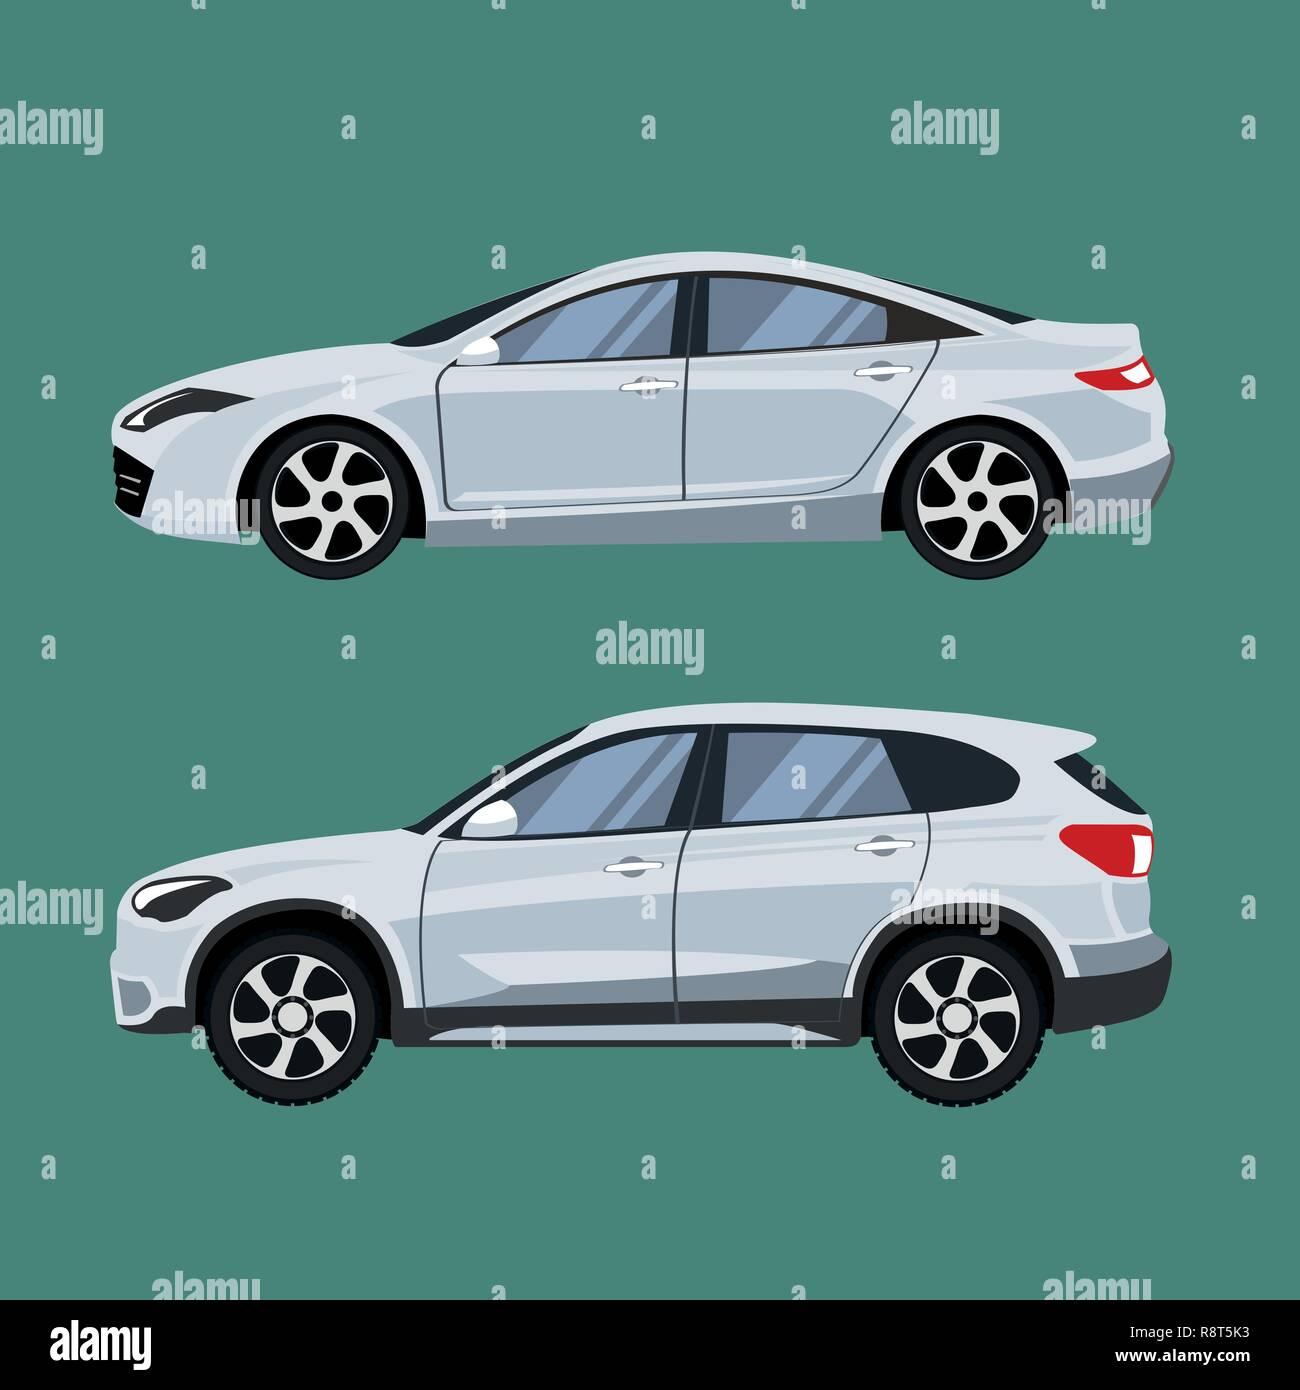 Set of vehicles suv and sedan in side view. - Stock Vector